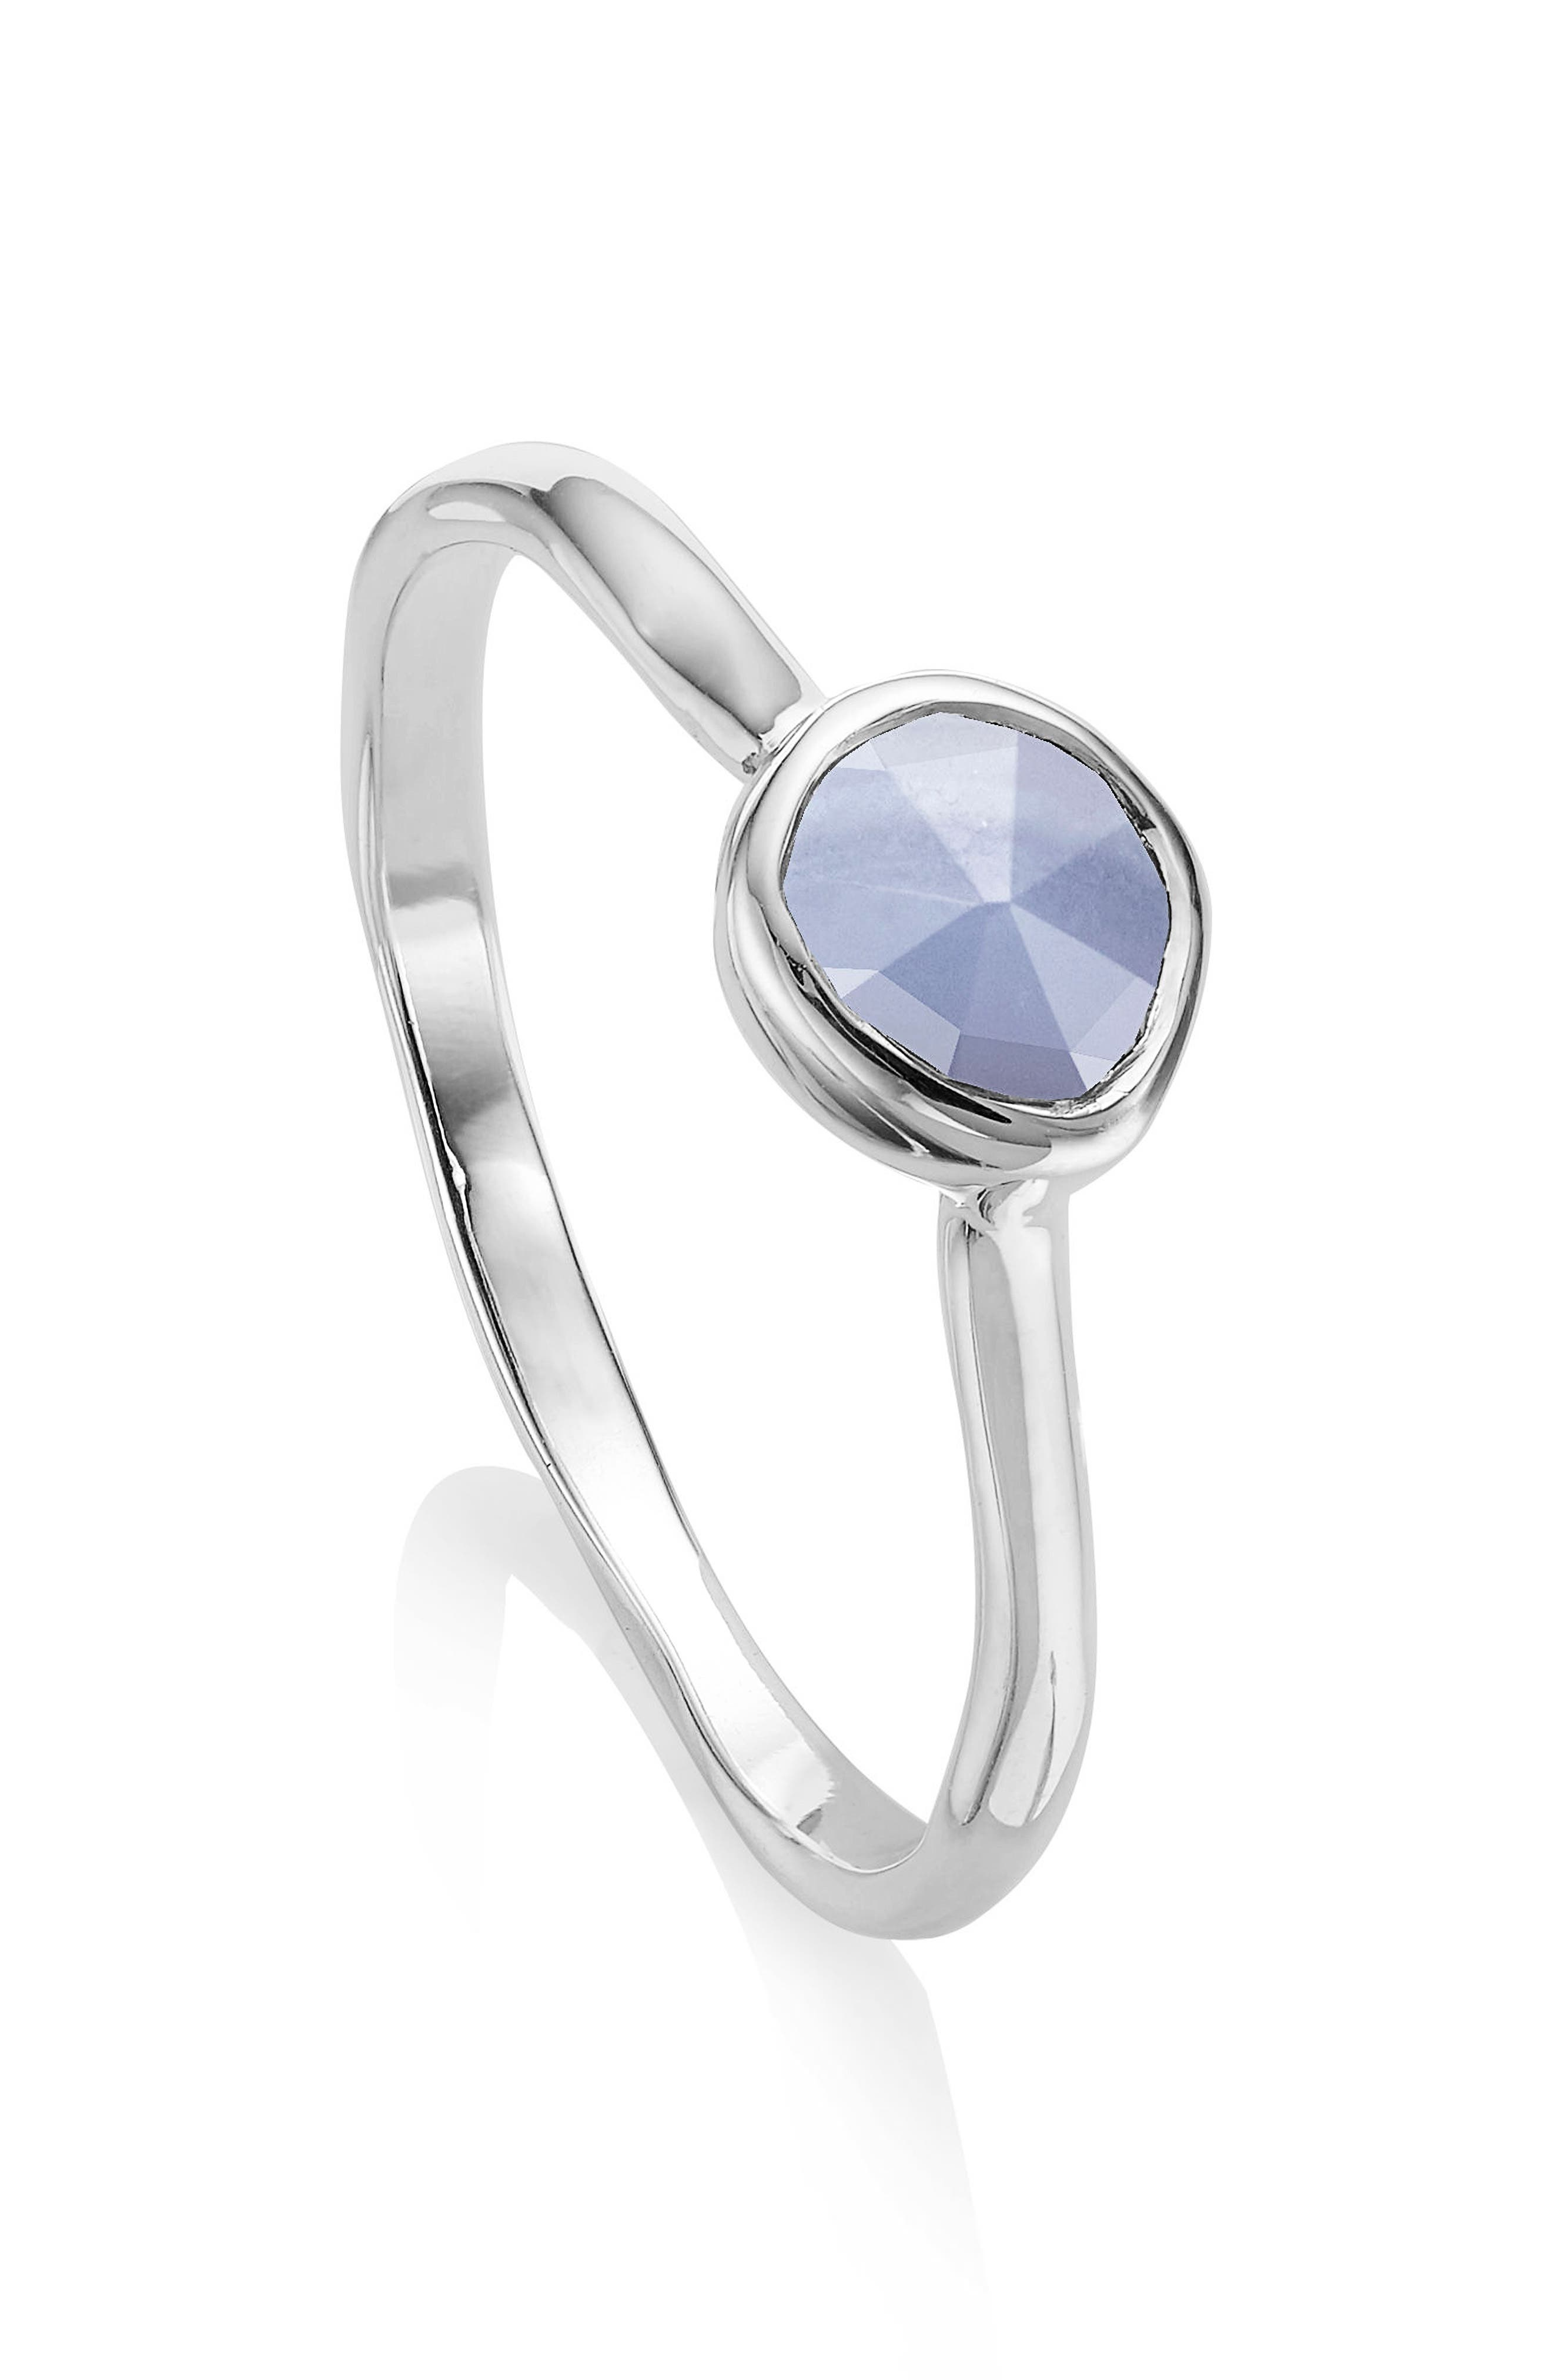 MONICA VINADER, Siren Small Stacking Ring, Main thumbnail 1, color, SILVER/ BLUE LACE AGATE